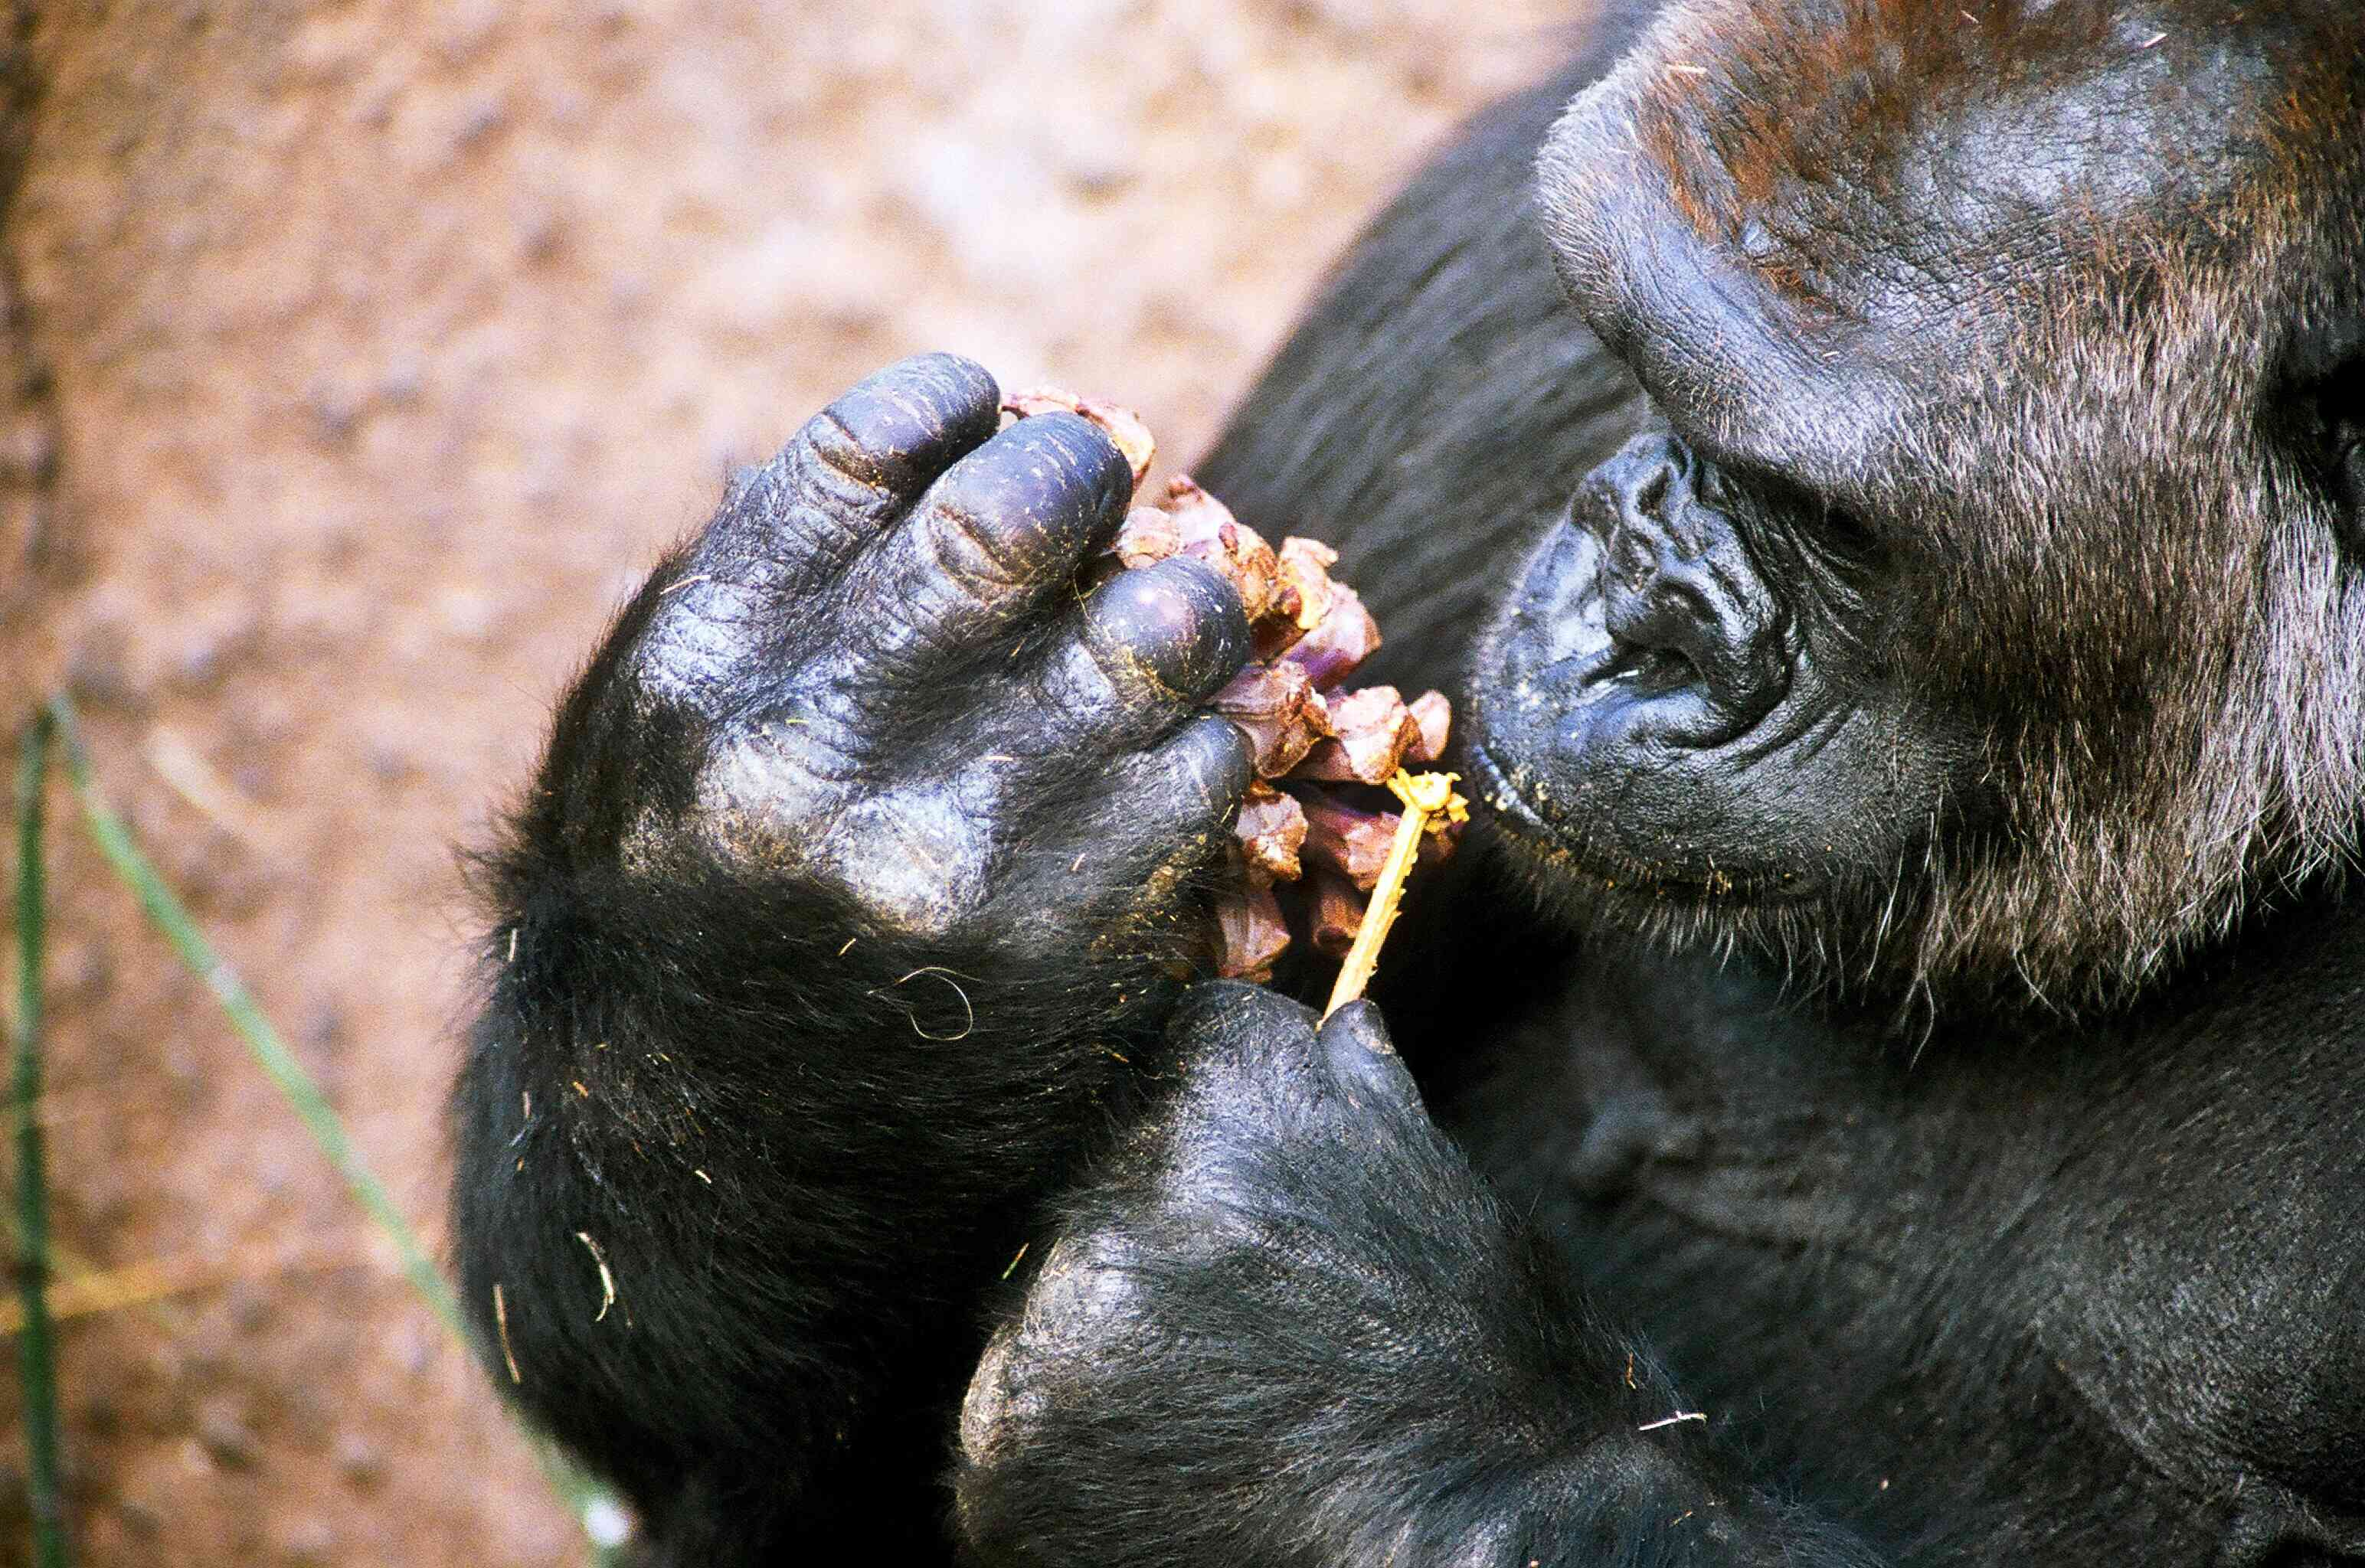 Silverback Gorilla Eating Peanut Butter out of Pinecone